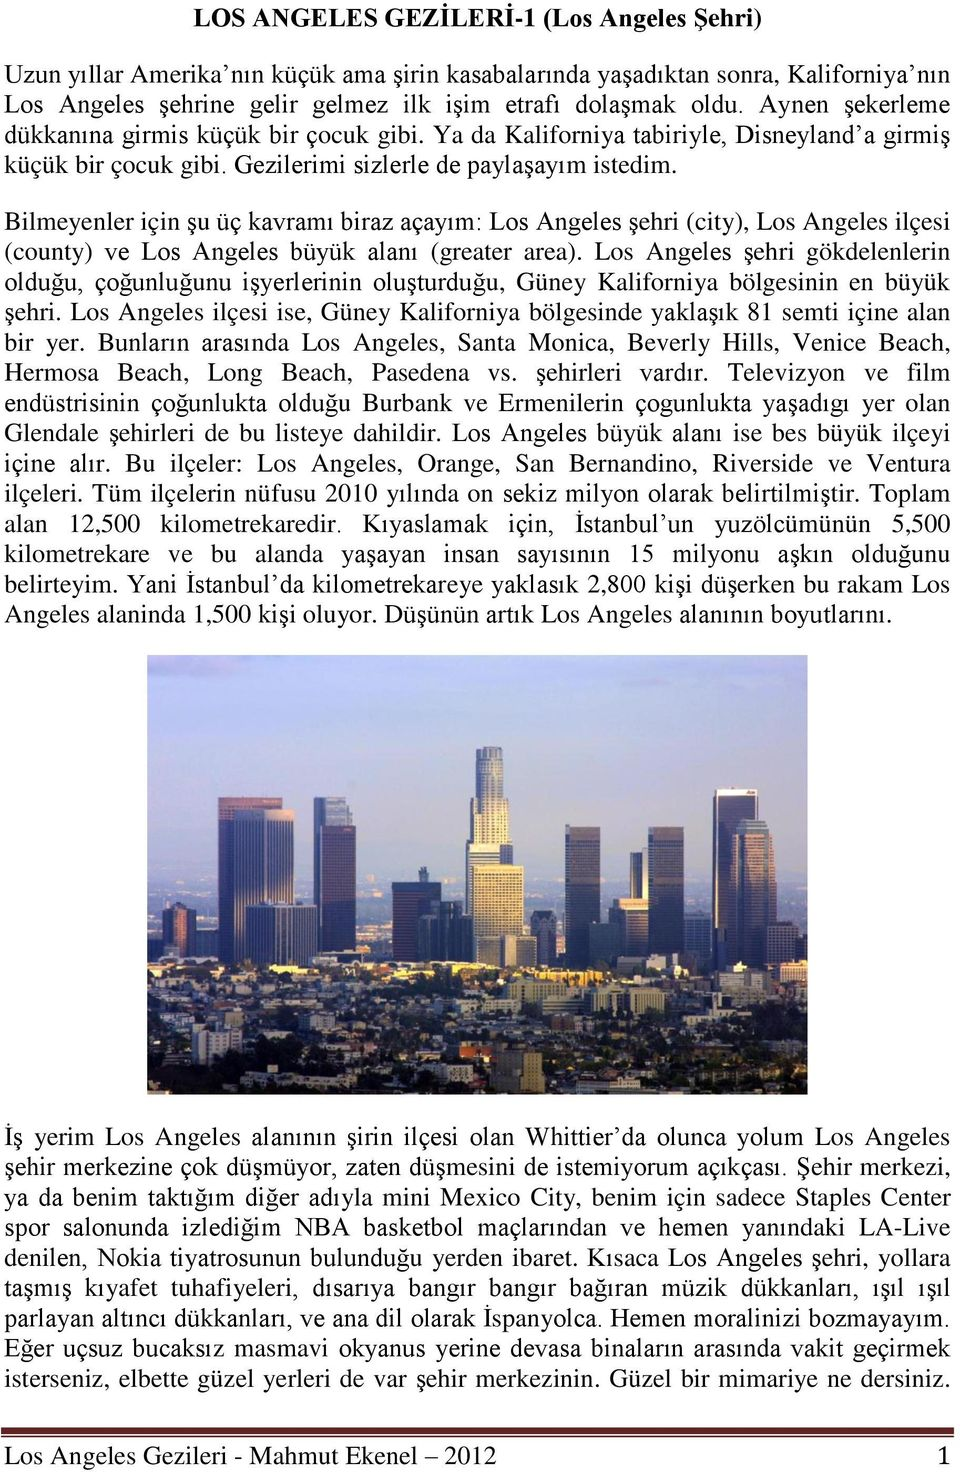 Bilmeyenler için şu üç kavramı biraz açayım: Los Angeles şehri (city), Los Angeles ilçesi (county) ve Los Angeles büyük alanı (greater area).